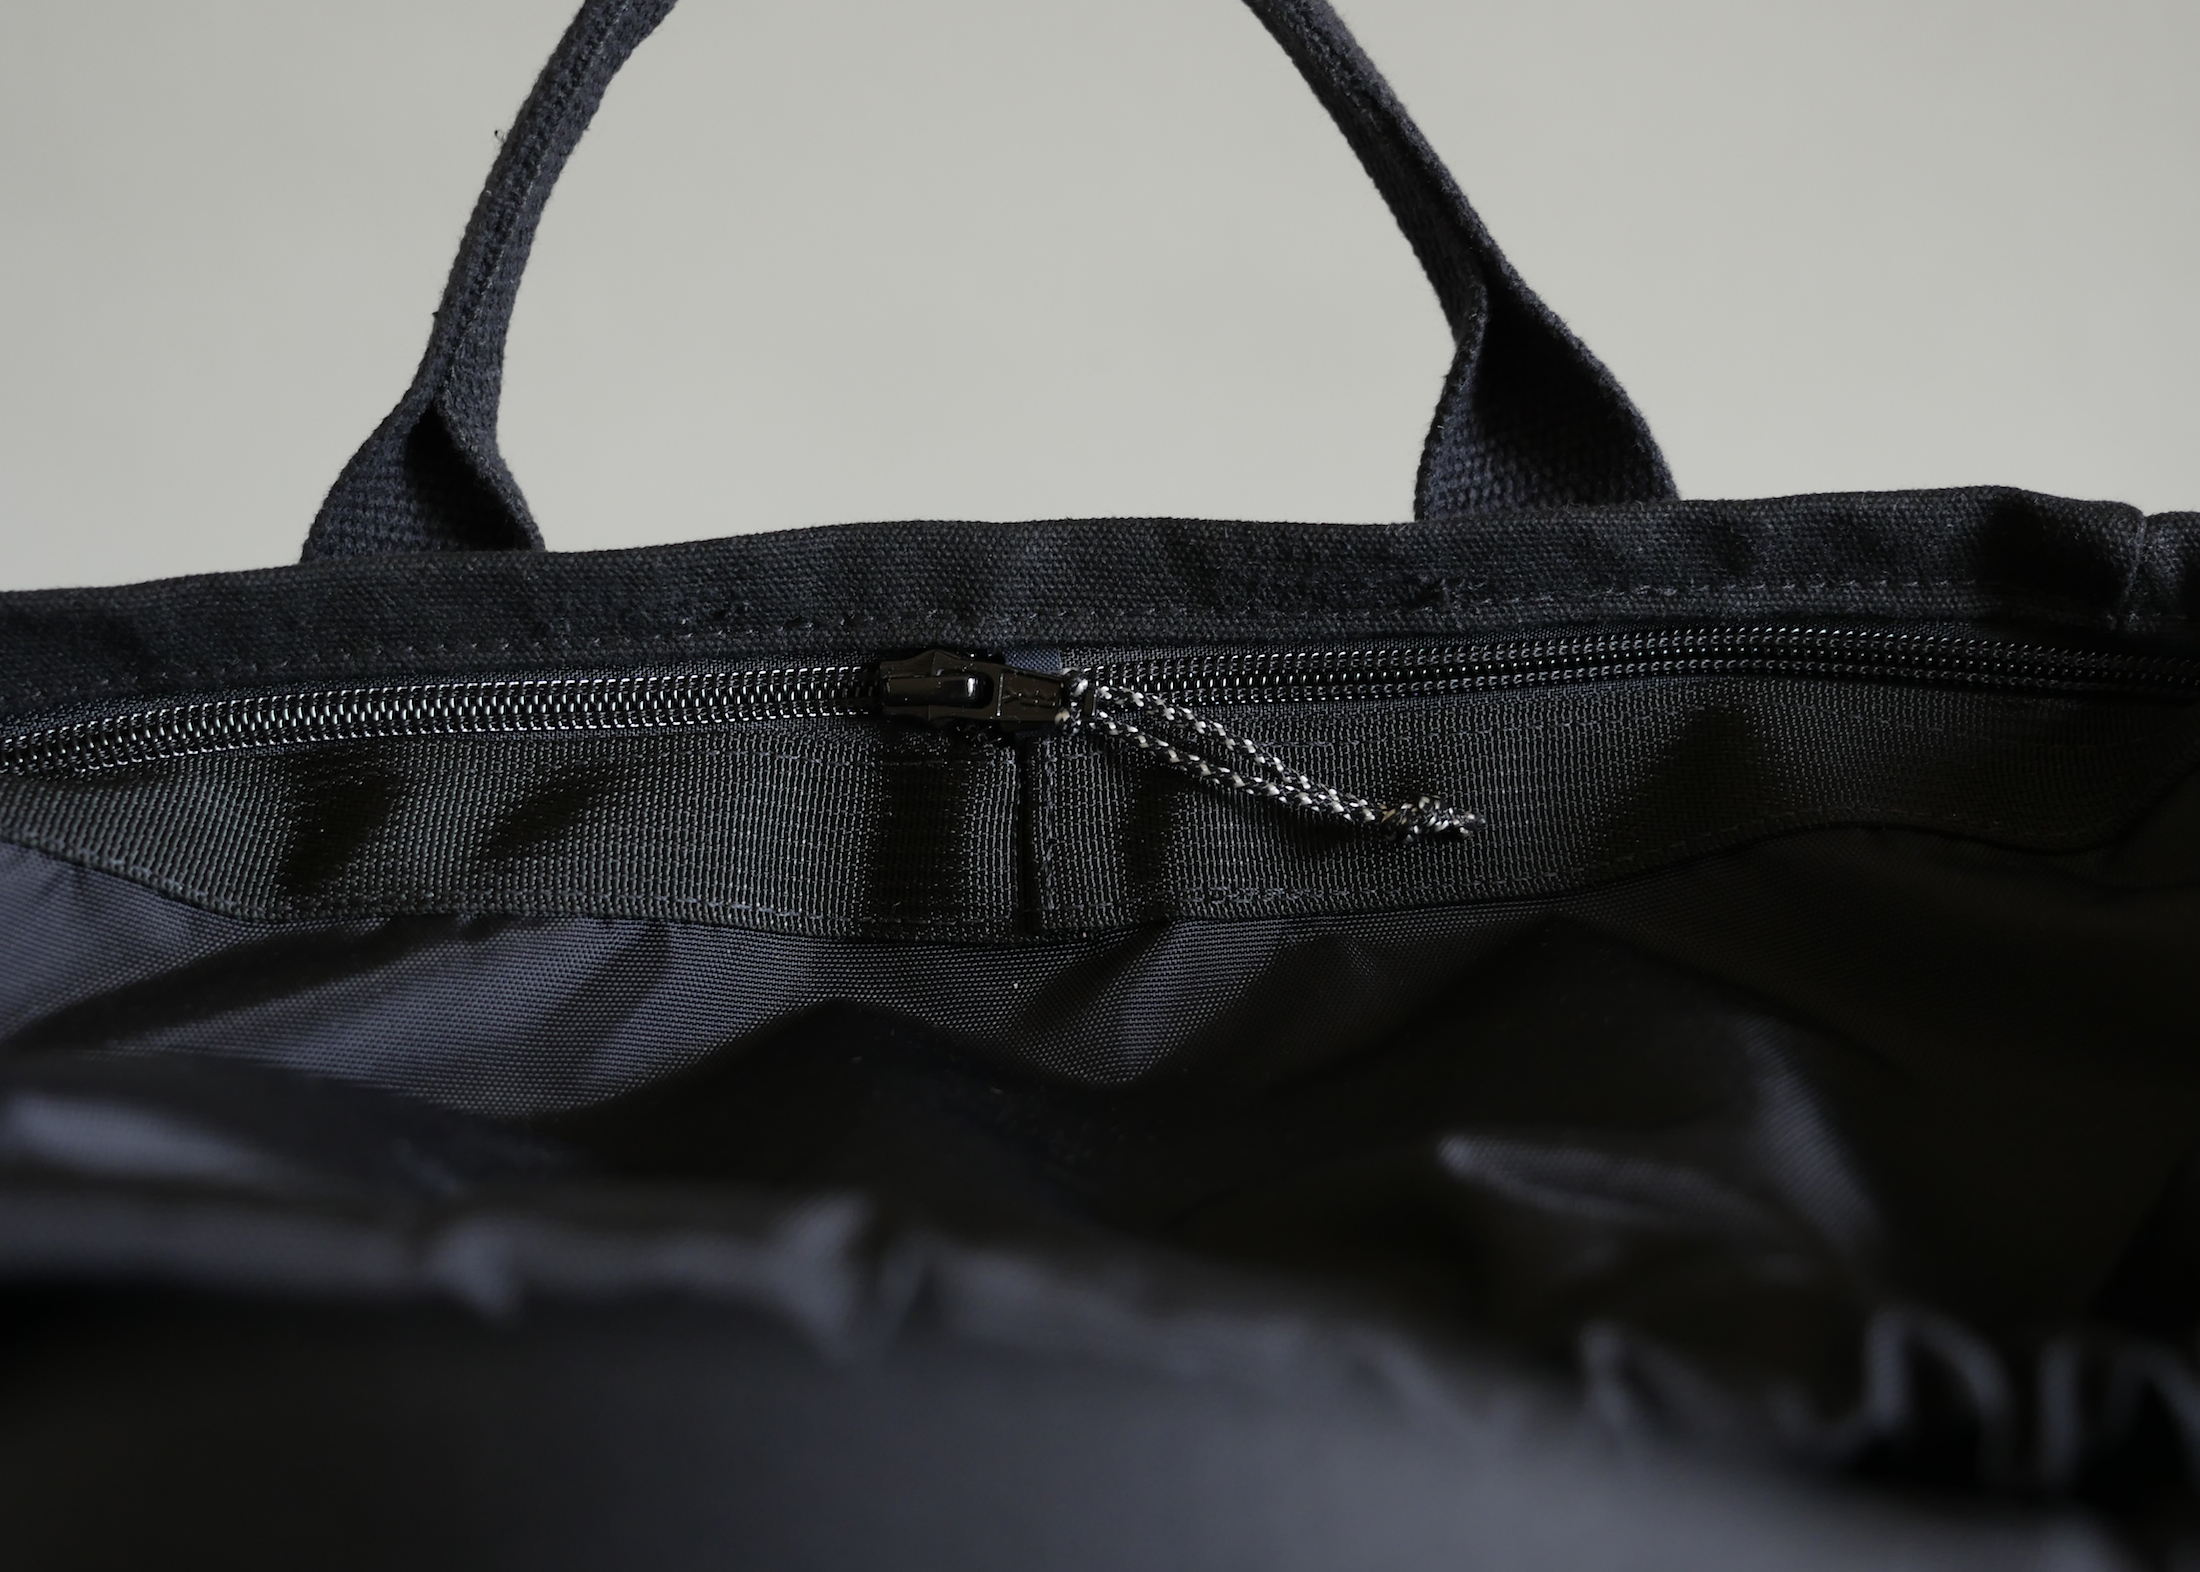 Smooth and strong coil zipper was the best choice for the removable liner. You'll be pleasantly surprised how easy removing and reinstalling the liner really is.